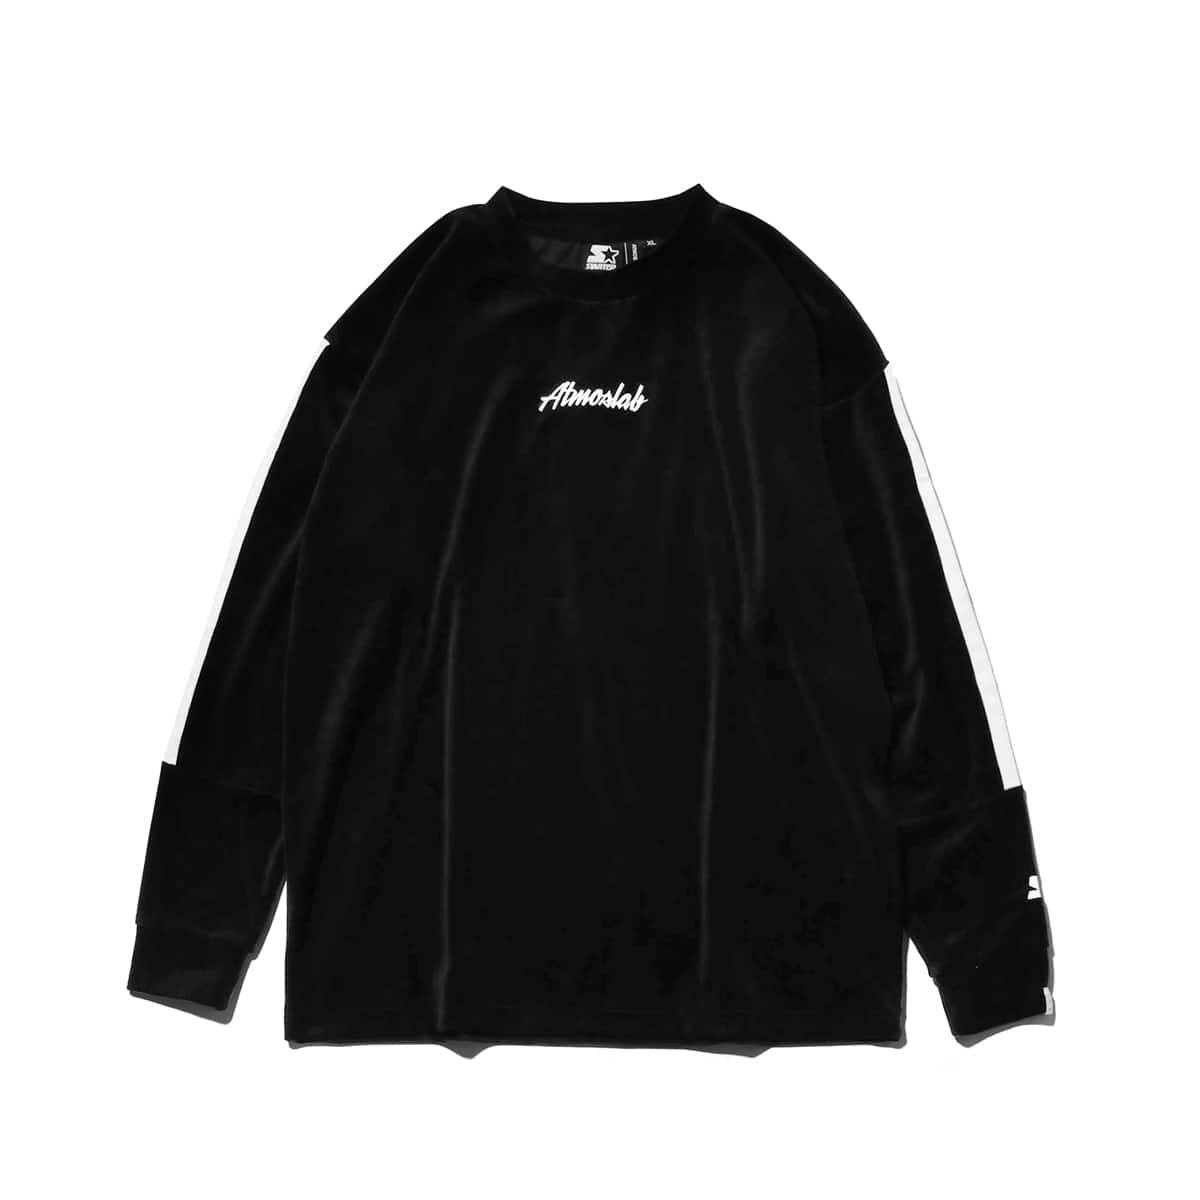 STARTER BLACK LABEL x ATMOS LAB WARM UP VELOUR LONG SLEEVE  white_photo_large